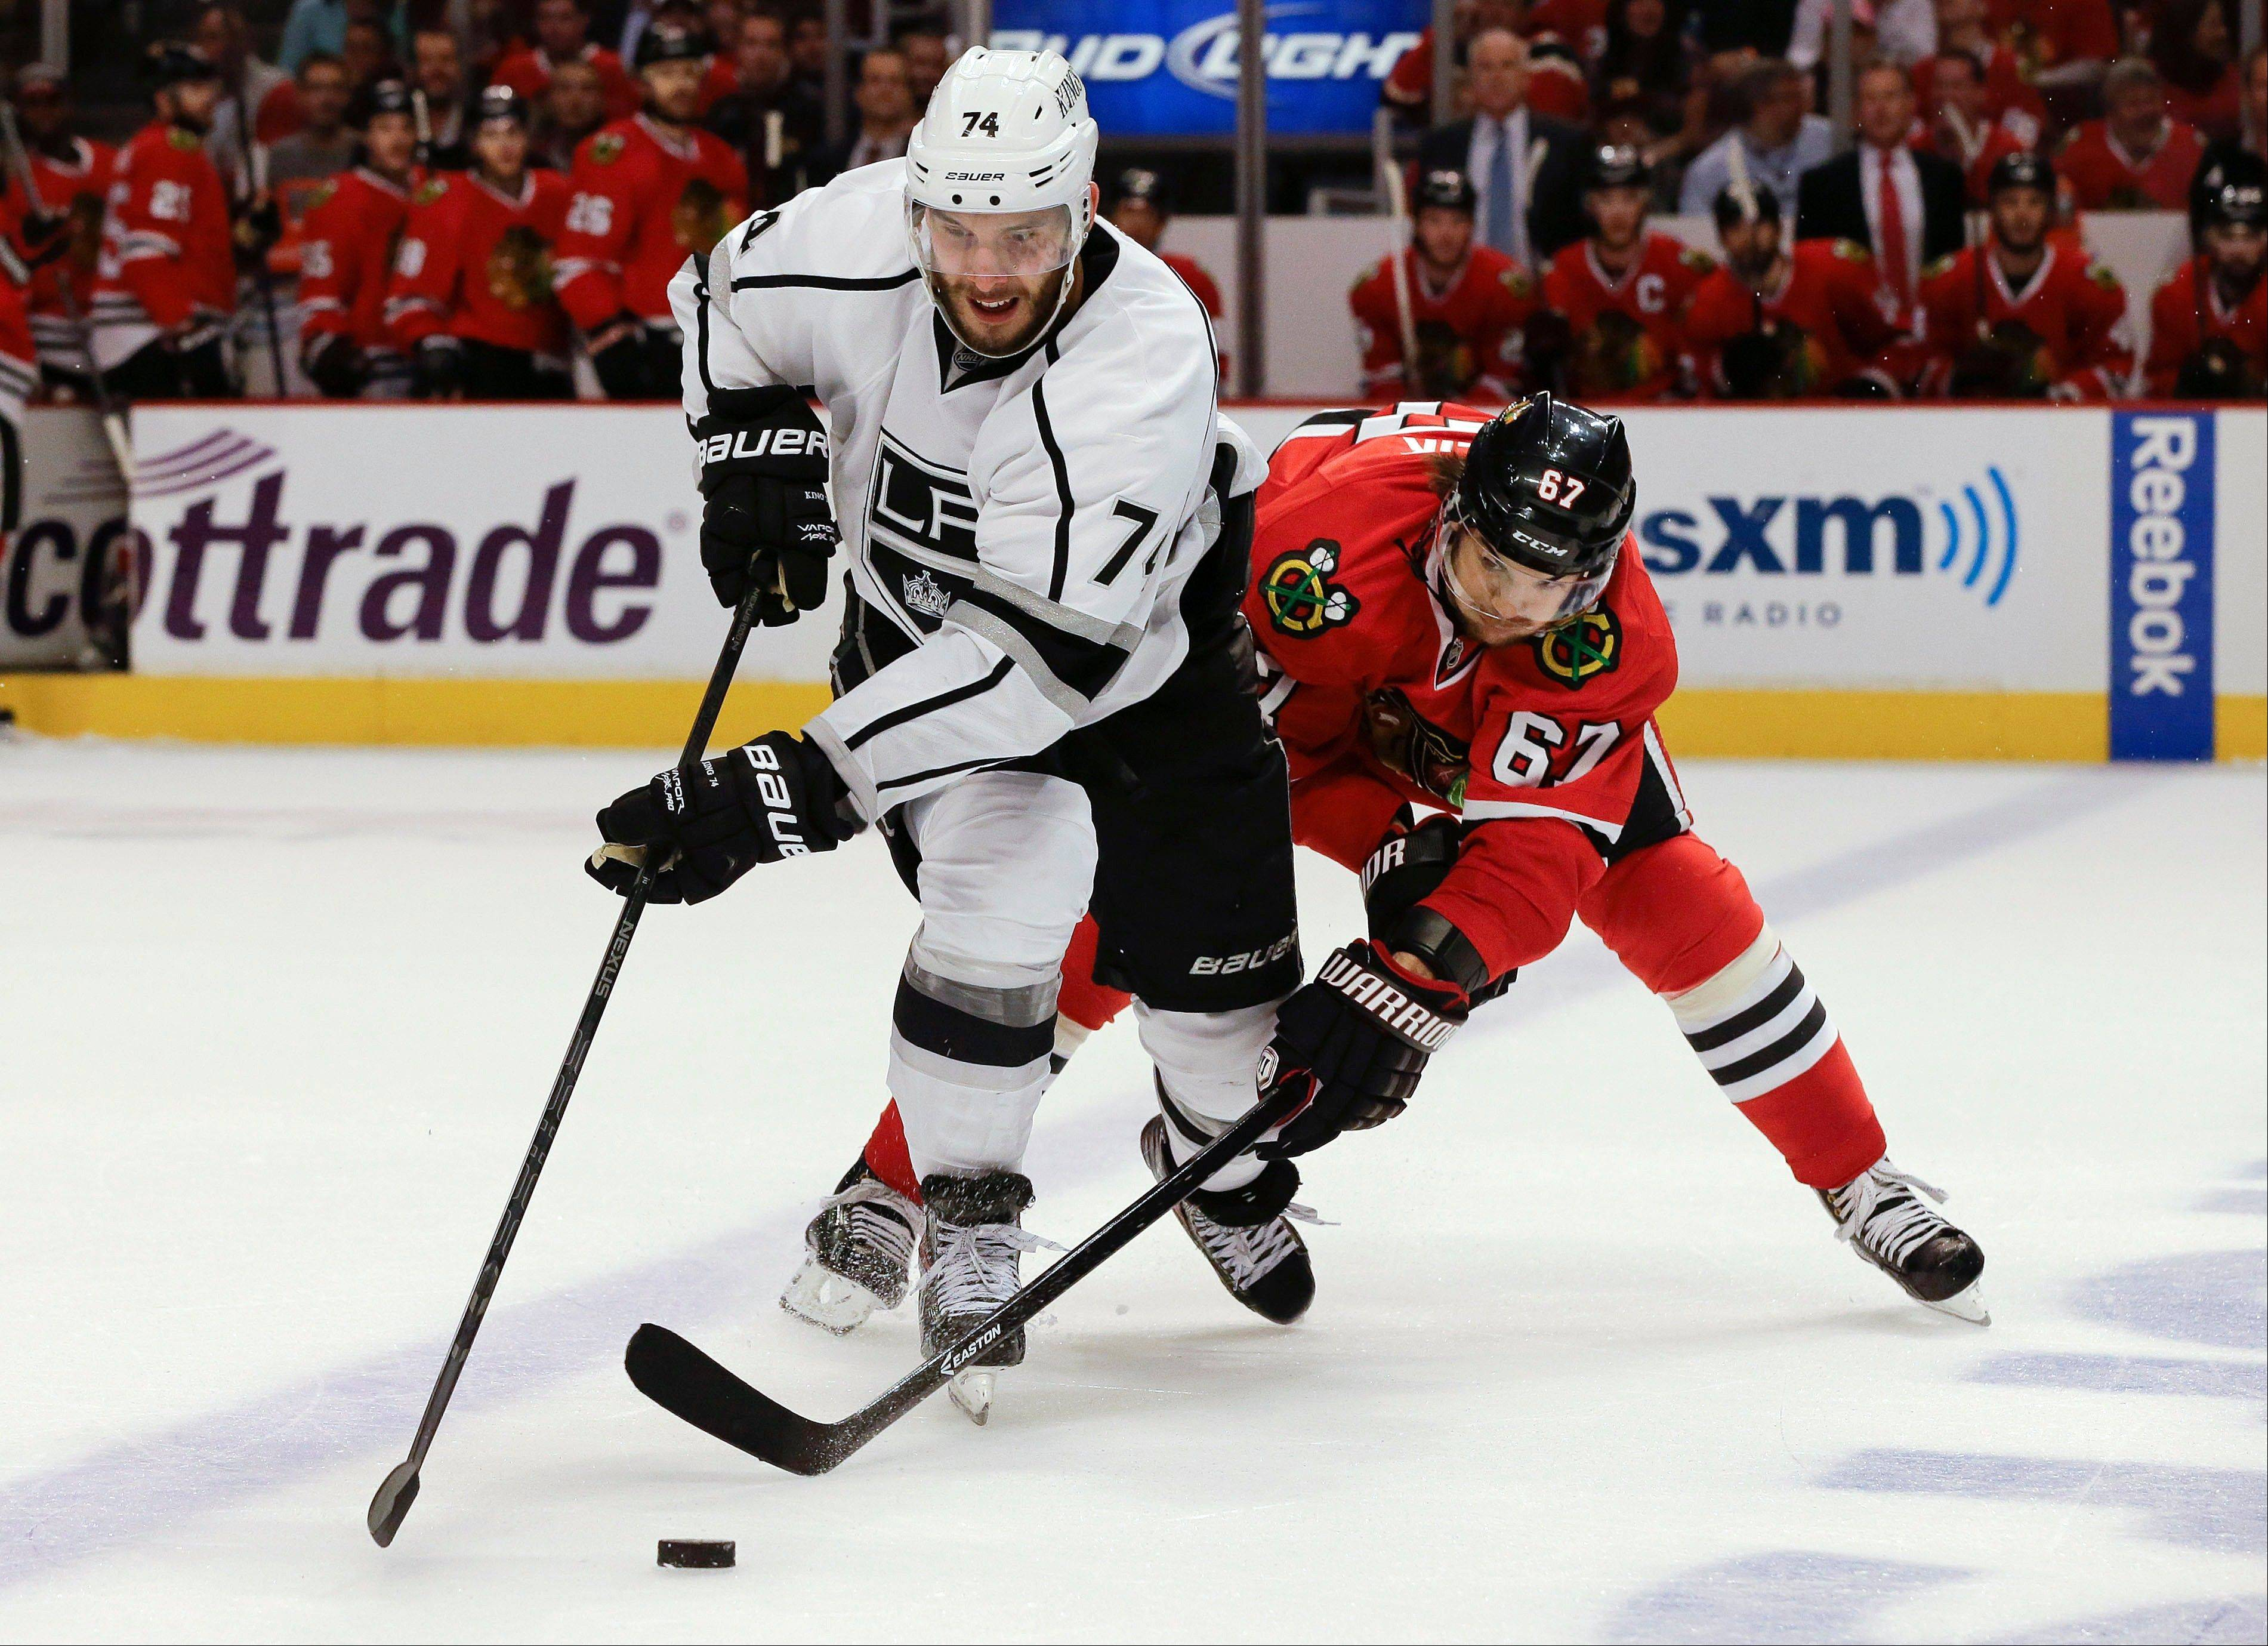 Los Angeles Kings center Dwight King (74) vies for the puck against Chicago Blackhawks center Michael Frolik (67) during the third period of Game 1 of the NHL hockey Stanley Cup Western Conference finals, Saturday, June 1, 2013, in Chicago. Chicago won 2-1.